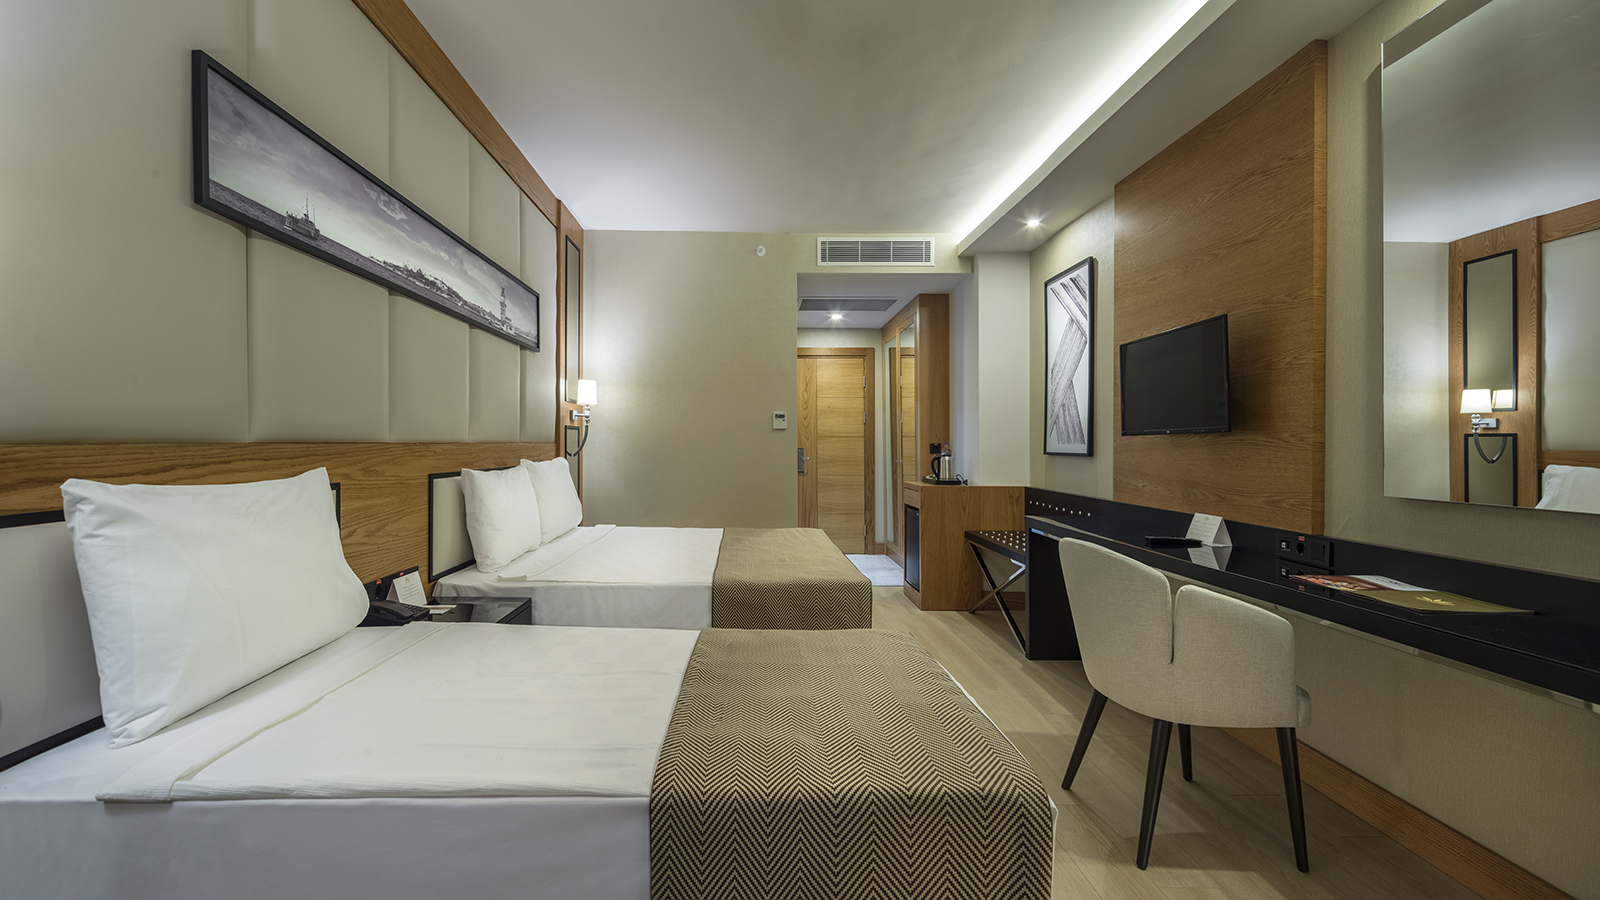 AYDINBEY QUEEN'S PALACE HOTEL 5*